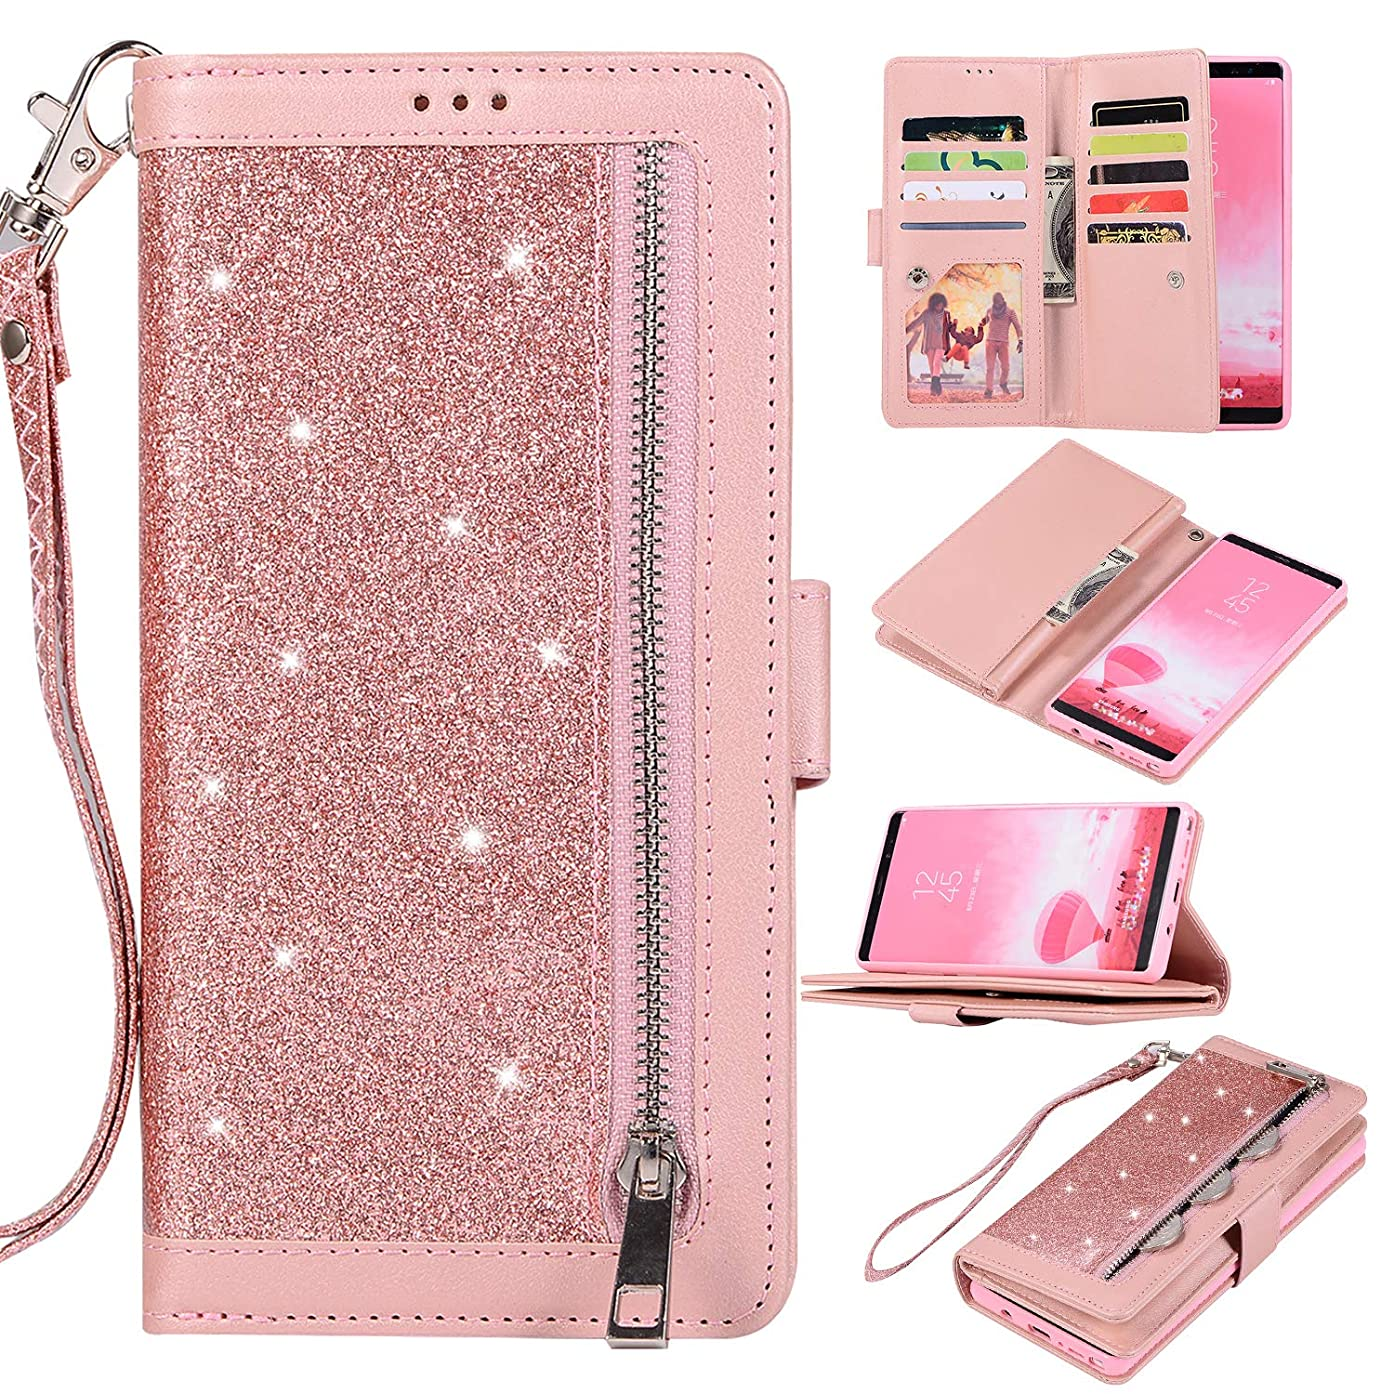 Fusicase for Galaxy S10 Wallet Case Glitter Case Bling Sparkle with Zipper Credit Card Holder Slot Pocket Stand Kickstand Cover with Wrist Strap PU Leather Case for Galaxy S10 Rose Gold